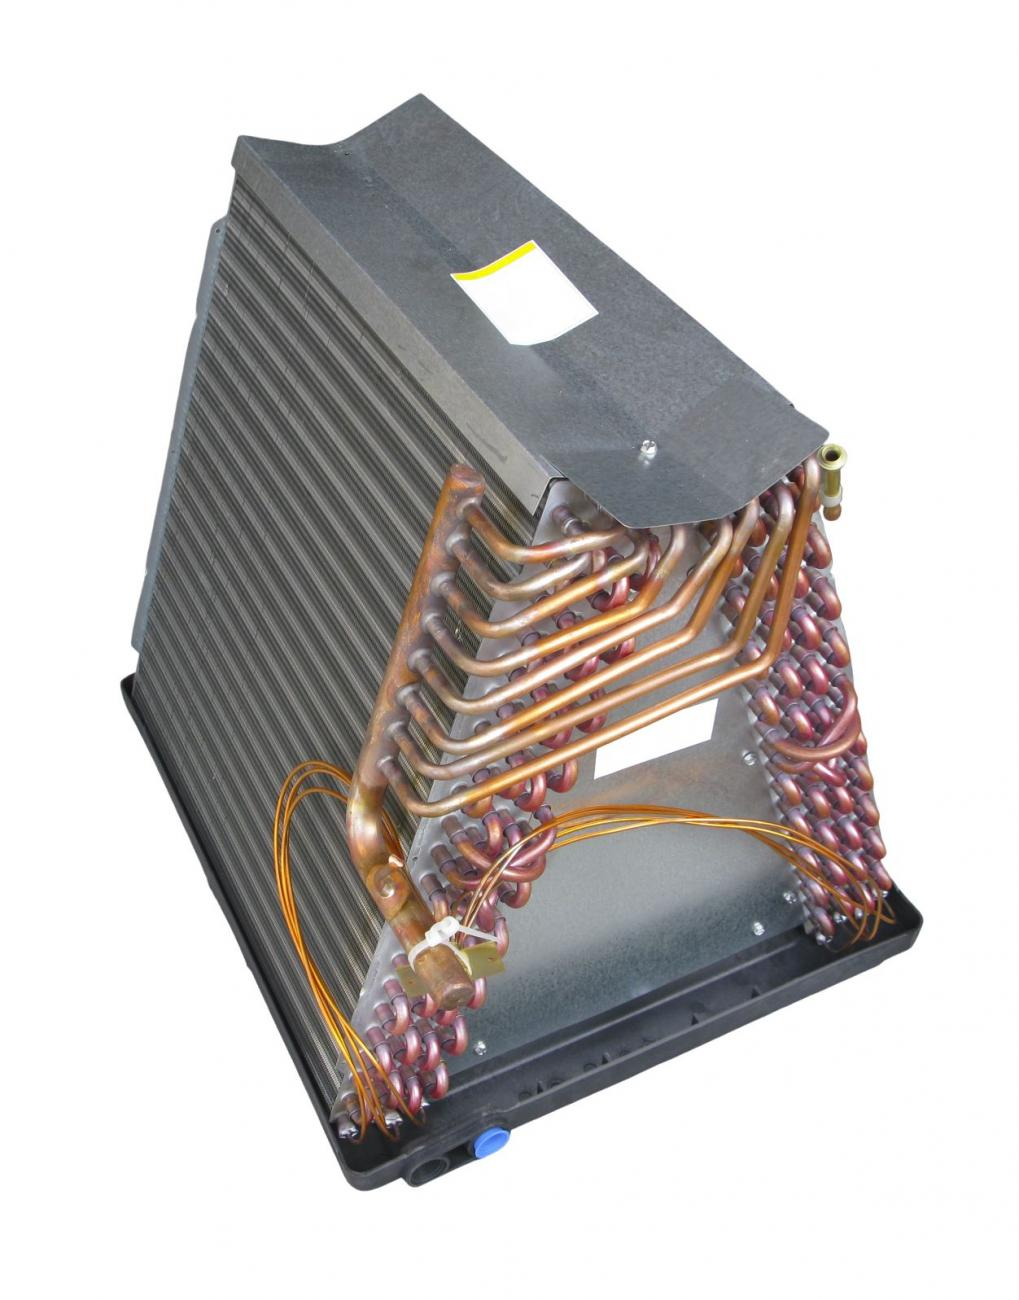 Evaporator coils from a central air conditioning system.